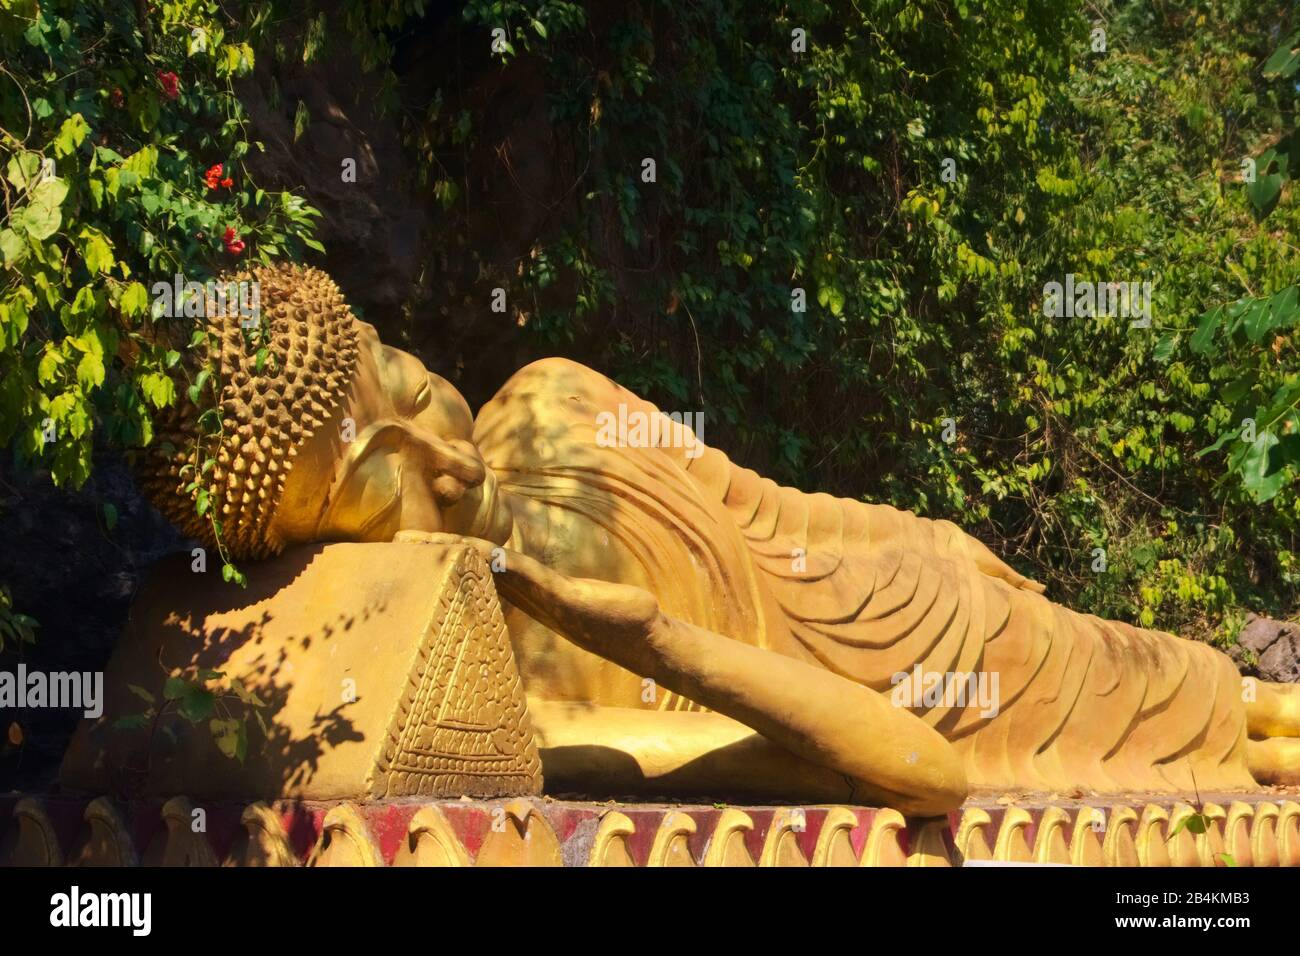 Golden statue of reclining Buddha on the way to the top of Mount Phou Si, a sacred mountain in Luang Prabang, Laos. Stock Photo